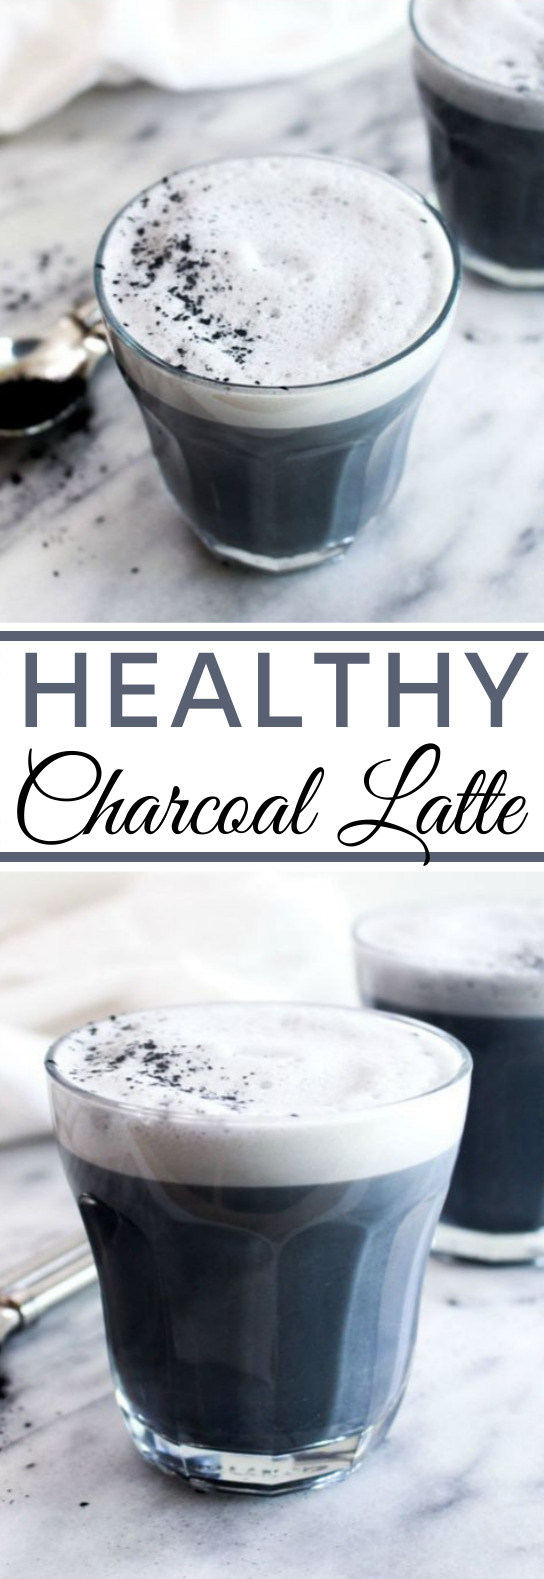 Detox Charcoal Latte #drinks #healthy #latte #warm #paleo